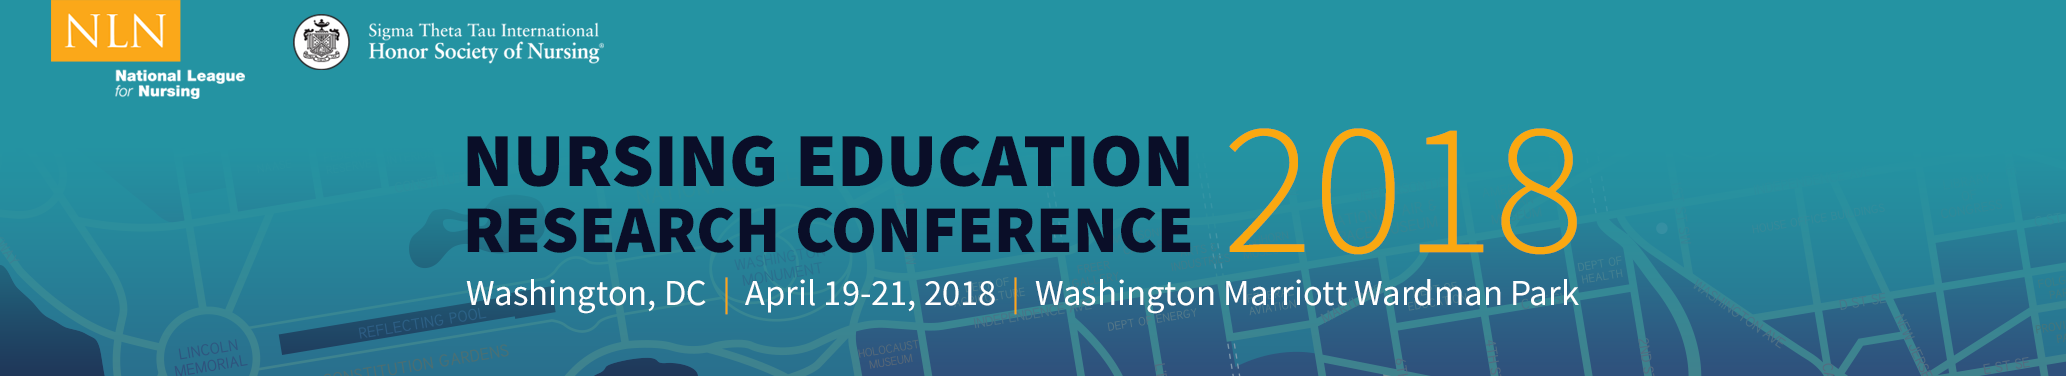 Nursing Education Research Conference 2018 (NERC18): Poster